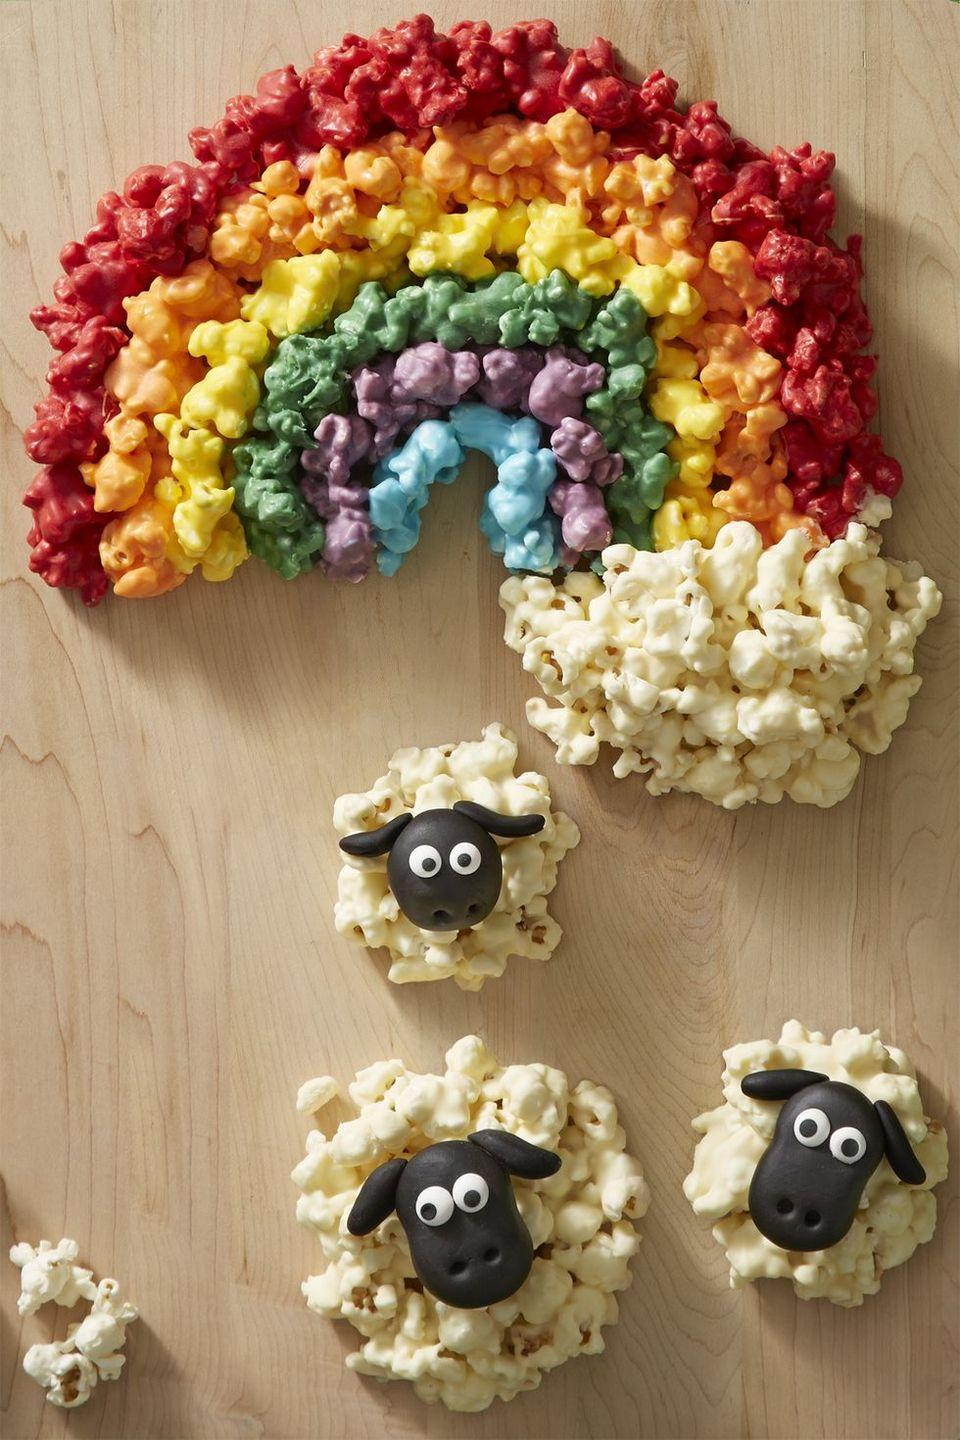 "<p>What lies at the end of the rainbow? We hope it's this light and tasty colorful popcorn snack!</p><p><em><a href=""https://www.womansday.com/food-recipes/food-drinks/recipes/a58124/popcorn-rainbow-recipe/"" rel=""nofollow noopener"" target=""_blank"" data-ylk=""slk:Get the recipe from Woman's Day »"" class=""link rapid-noclick-resp"">Get the recipe from Woman's Day »</a></em></p>"